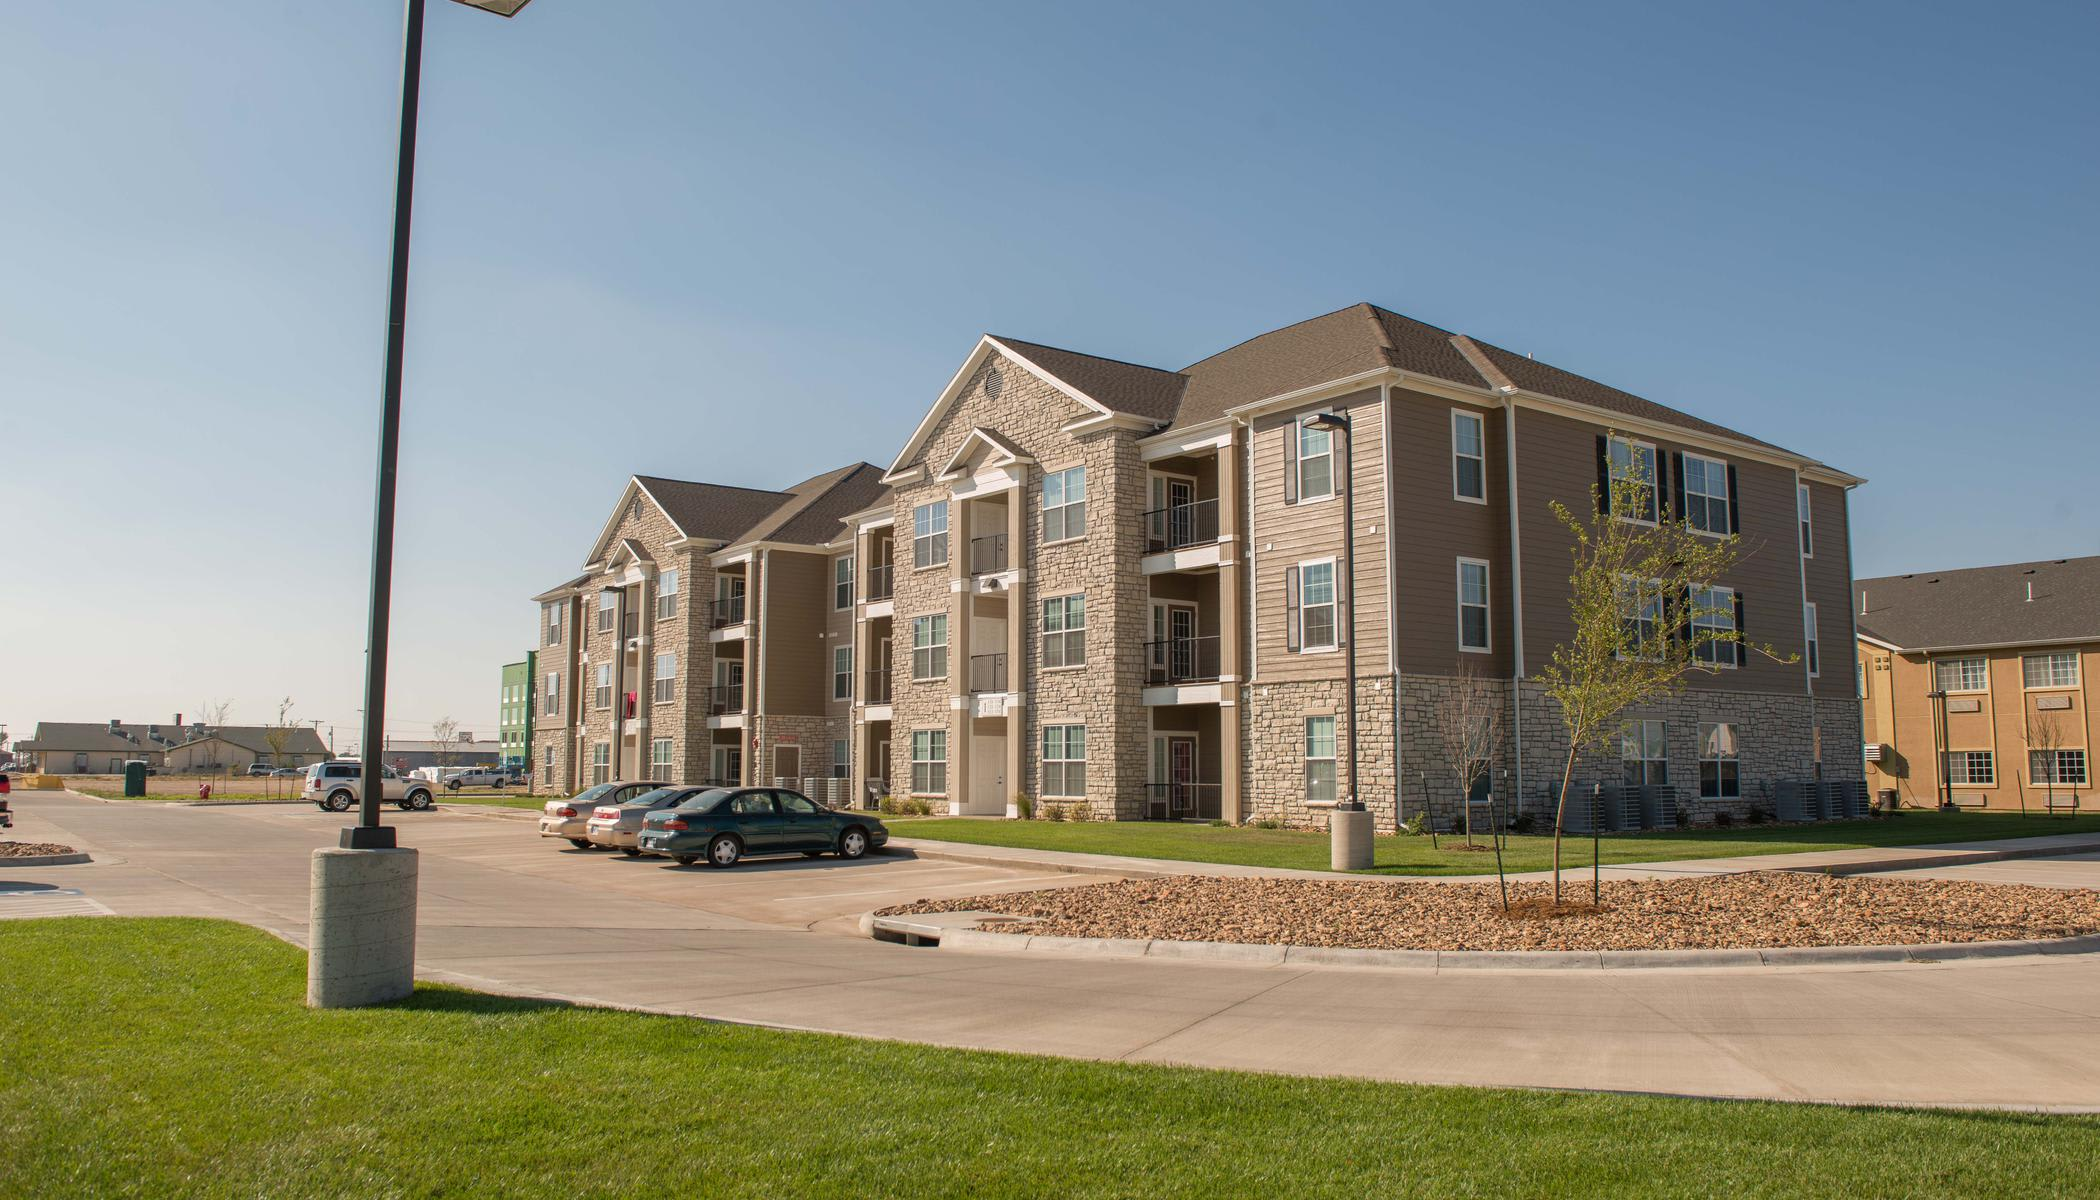 Apartments with parking lot at The Reserves at Trail Ridge in Great Bend, KS